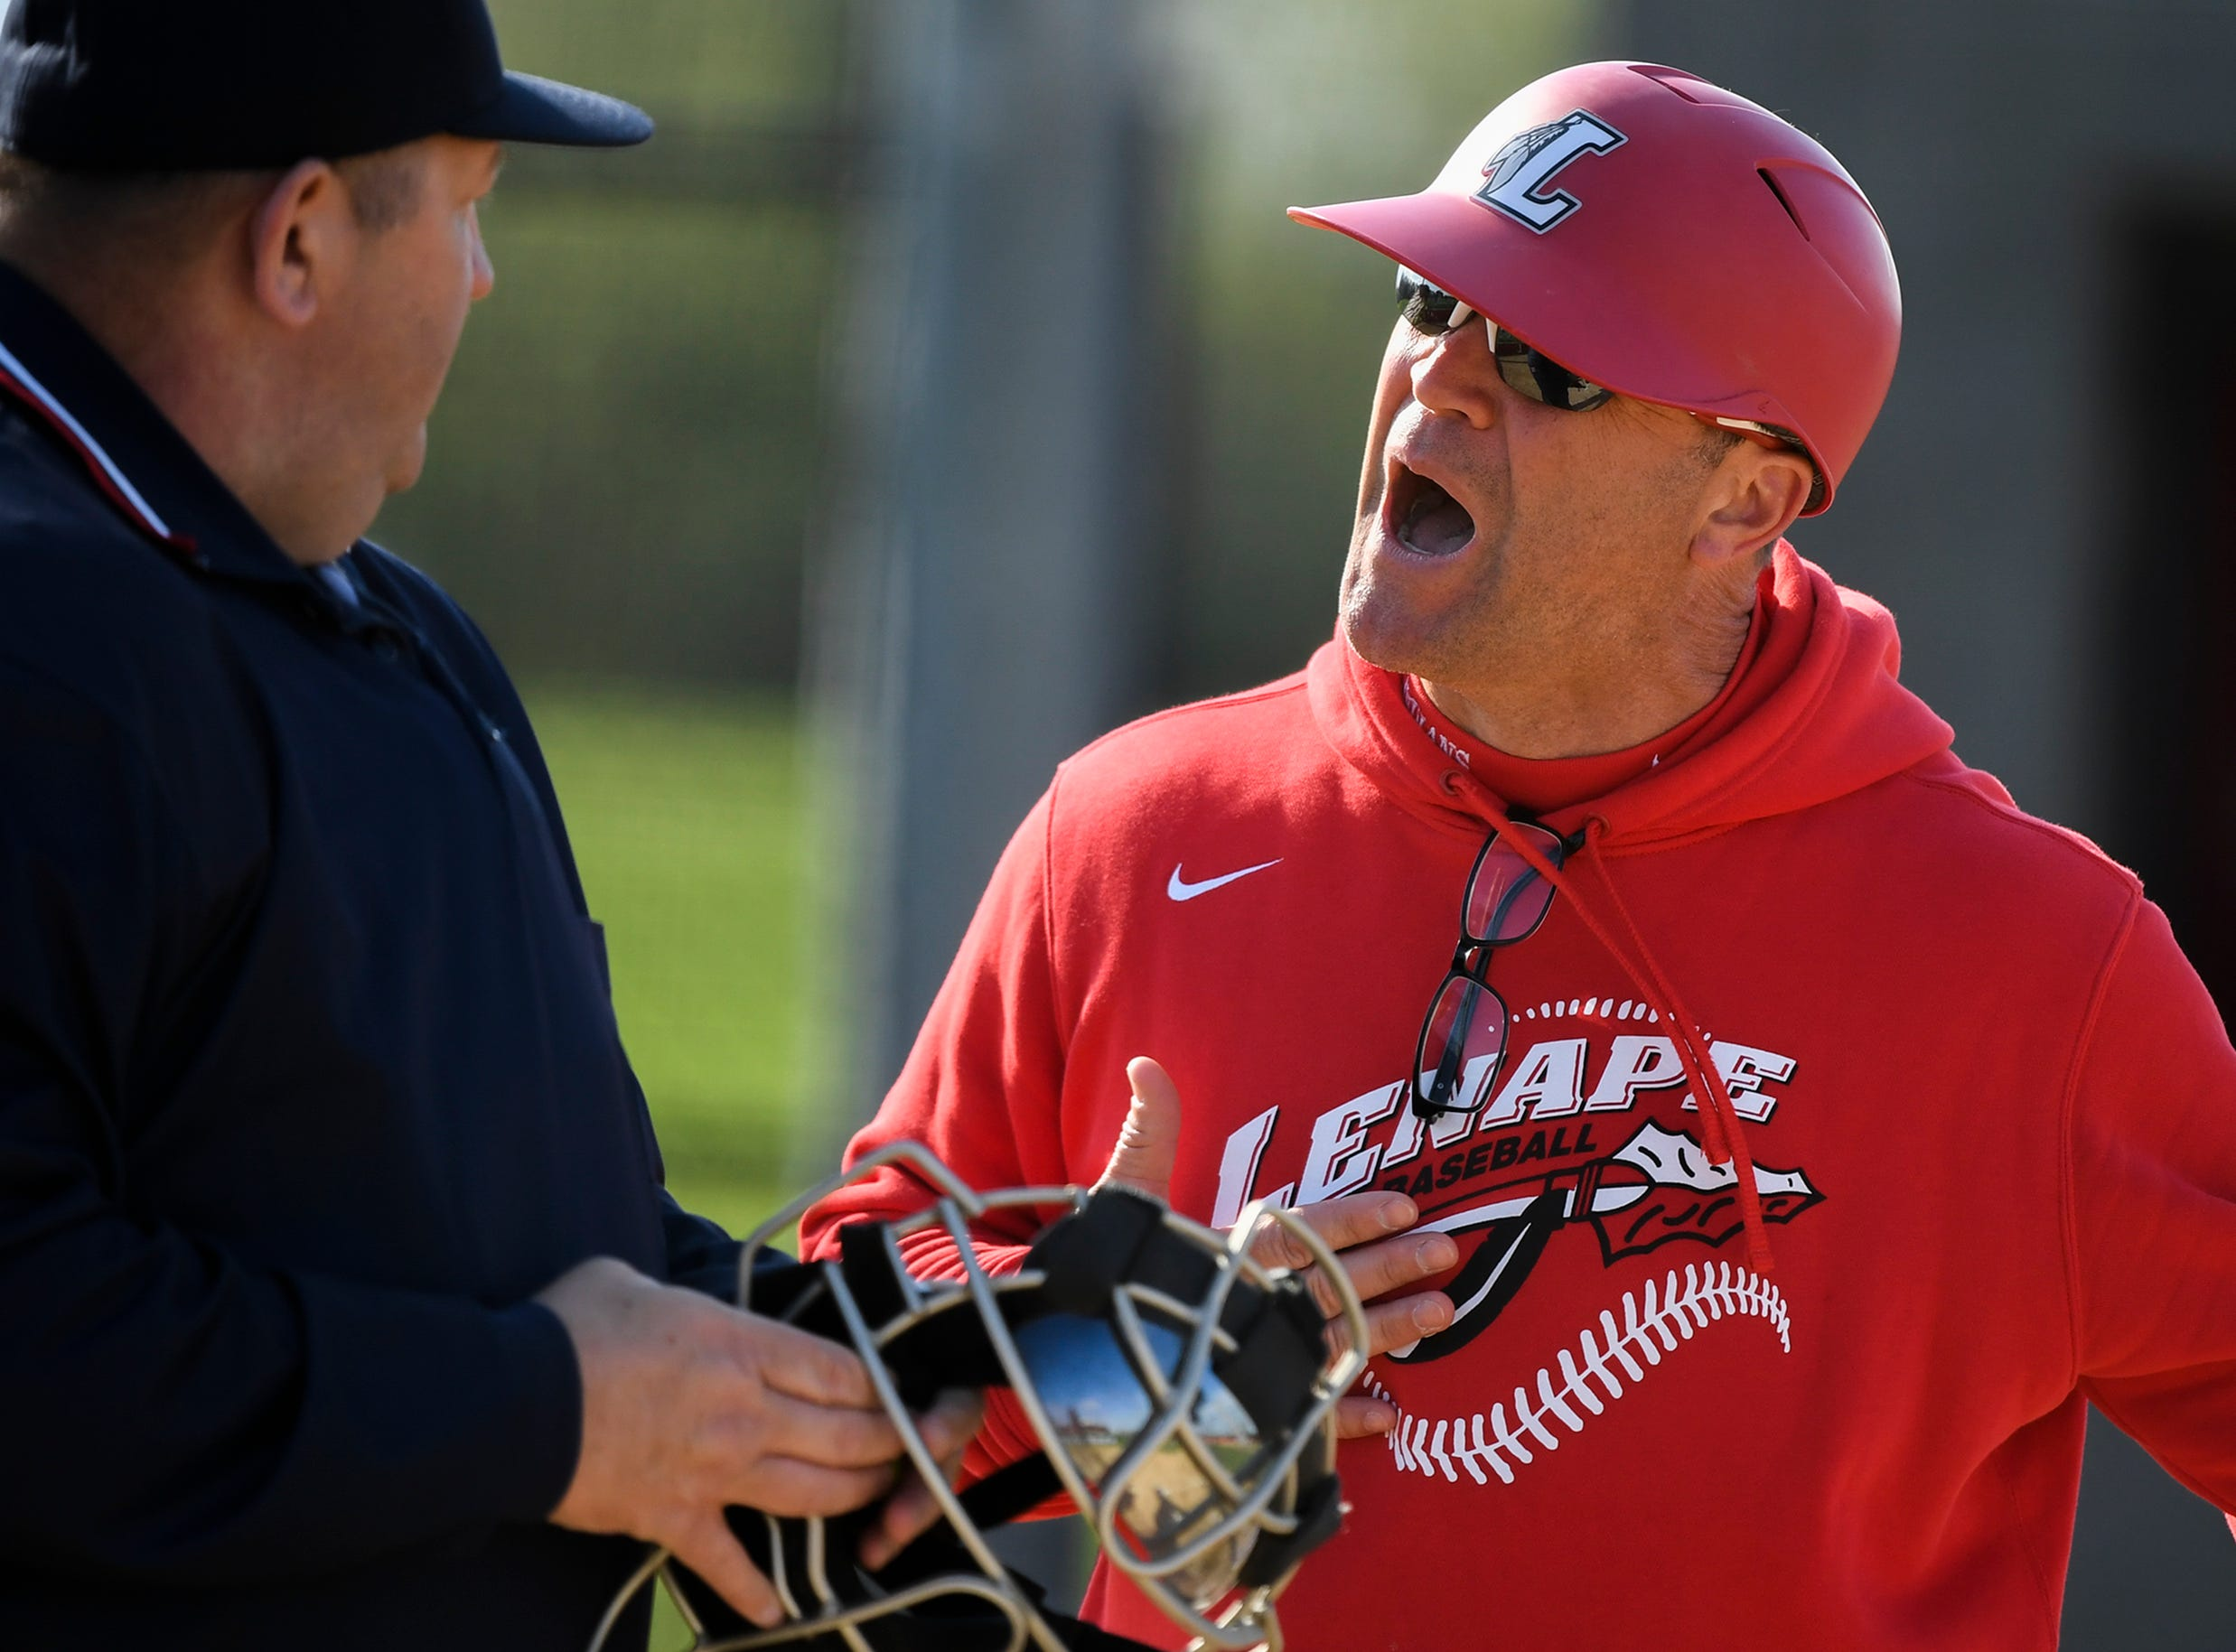 Lenape head coach Phil Fiore argues with an official over a called strike while the batter claimed to be asking for time Tuesday, April 16, 2019 in Medford, N.J. Bishop Eustace won 5-3 and head coach Sam Tropiano earned his record-setting 673rd win.